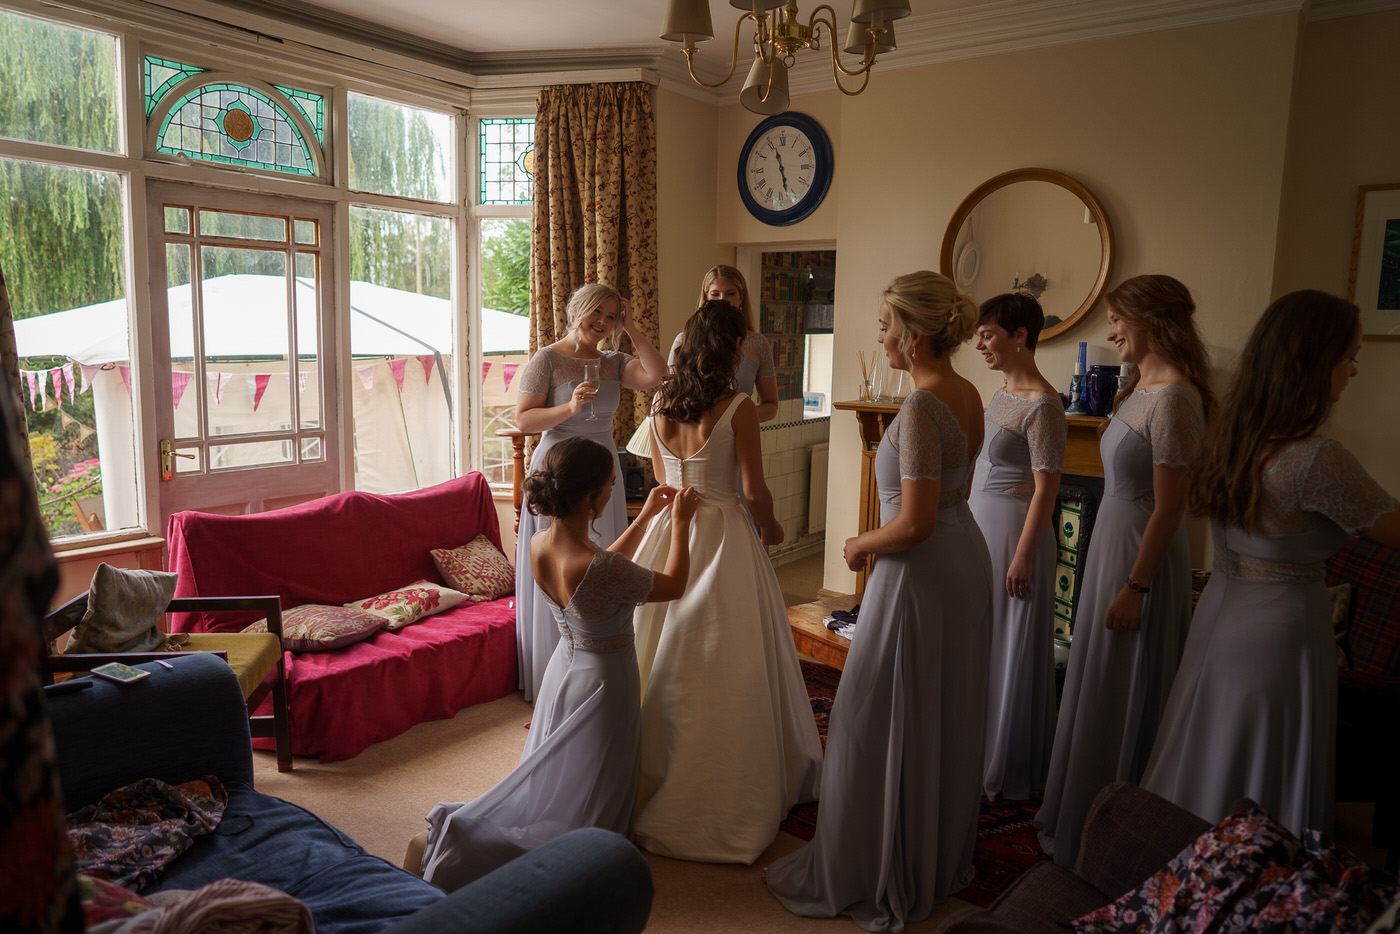 wedding photographer in shropshire captures candid moments at wedding